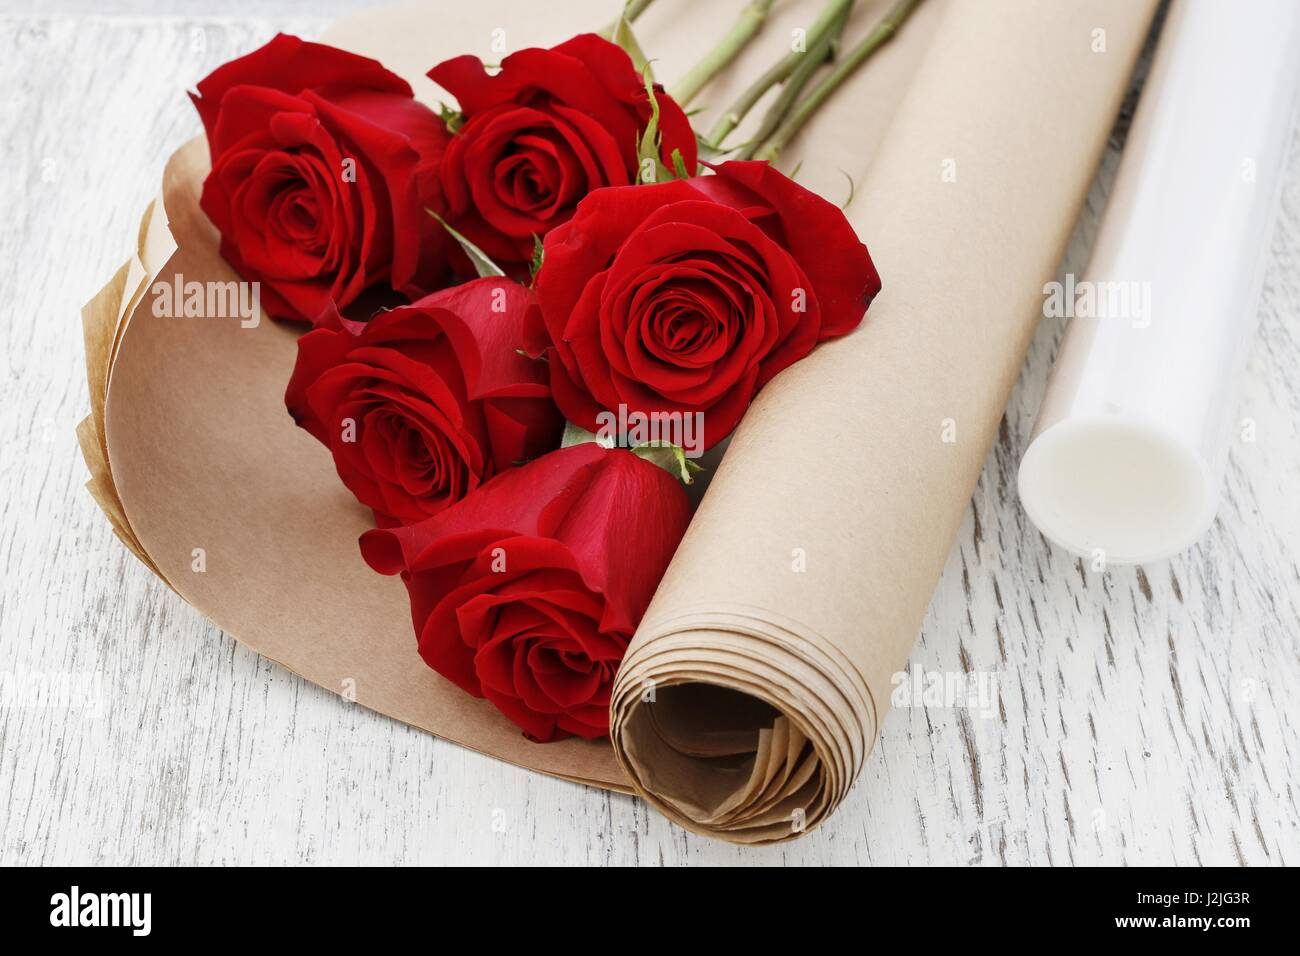 Paper or plastic stretch film as wrapping for red rose flowers copy paper or plastic stretch film as wrapping for red rose flowers copy space mightylinksfo